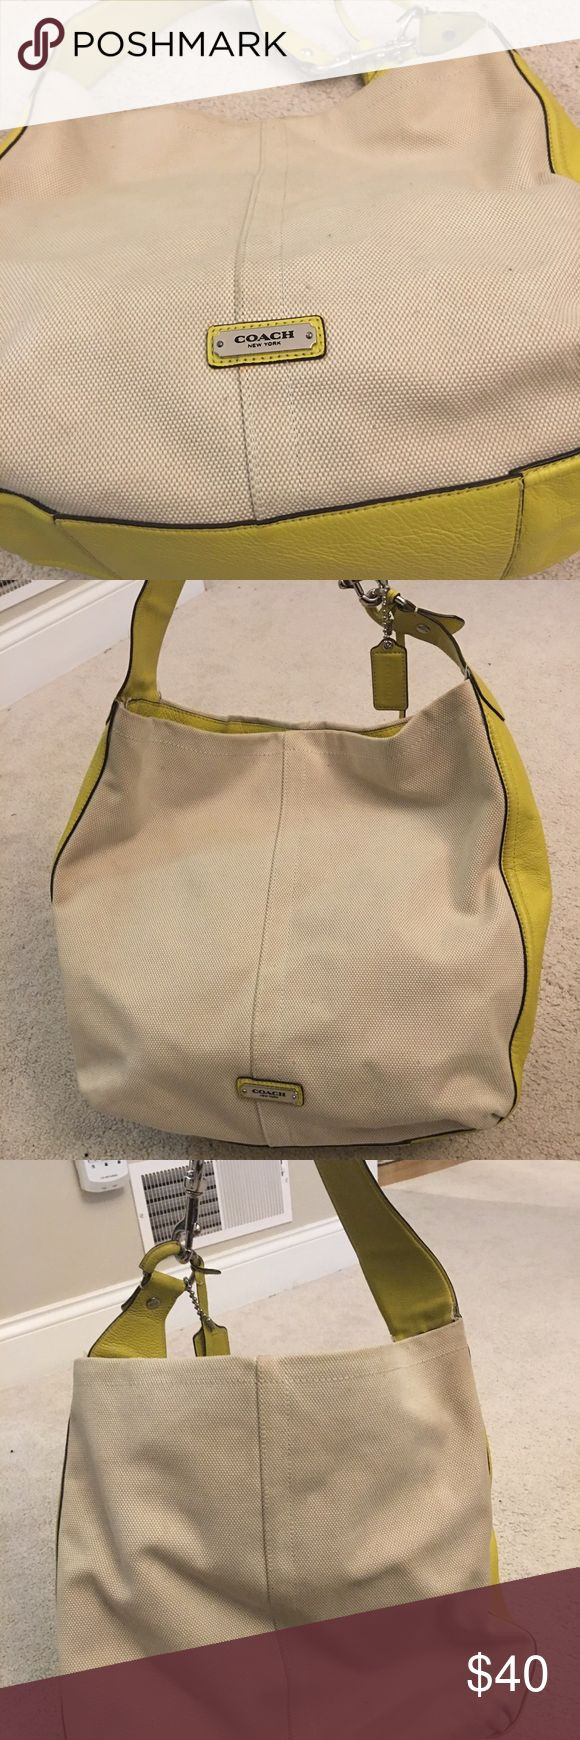 Coach brand Spring/Summer bag! Gently used Coach handbag, cream canvas material trimmed with chartreuse leather and accents. Coach Outlet bag. Perfect for spring and summer. Coach Bags Shoulder Bags